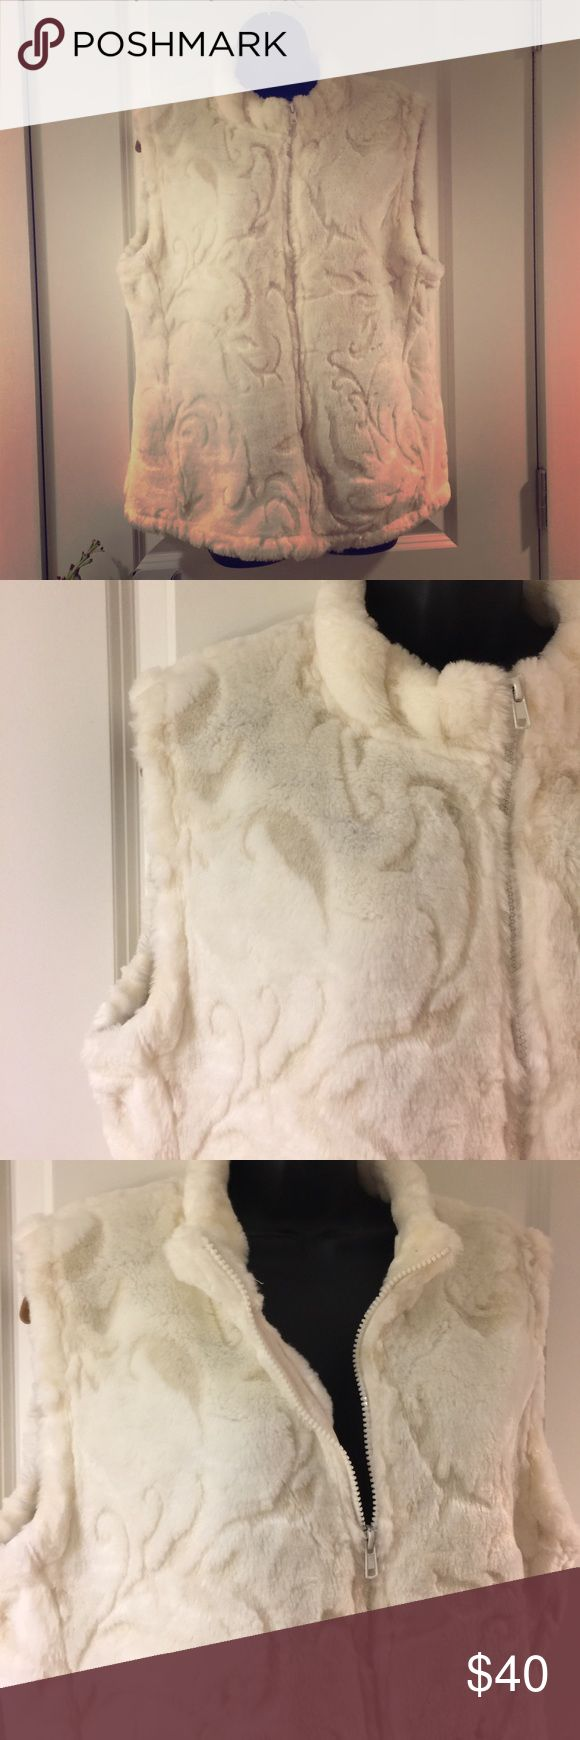 ⬇️Reduced ⬇️ Coldwater Creek, XL, faux fur,  vest Coldwater Creek, XL, off white, faux fur, zip vest, lovely design in the fur, vest like new, Coldwater Creek Jackets & Coats Vests